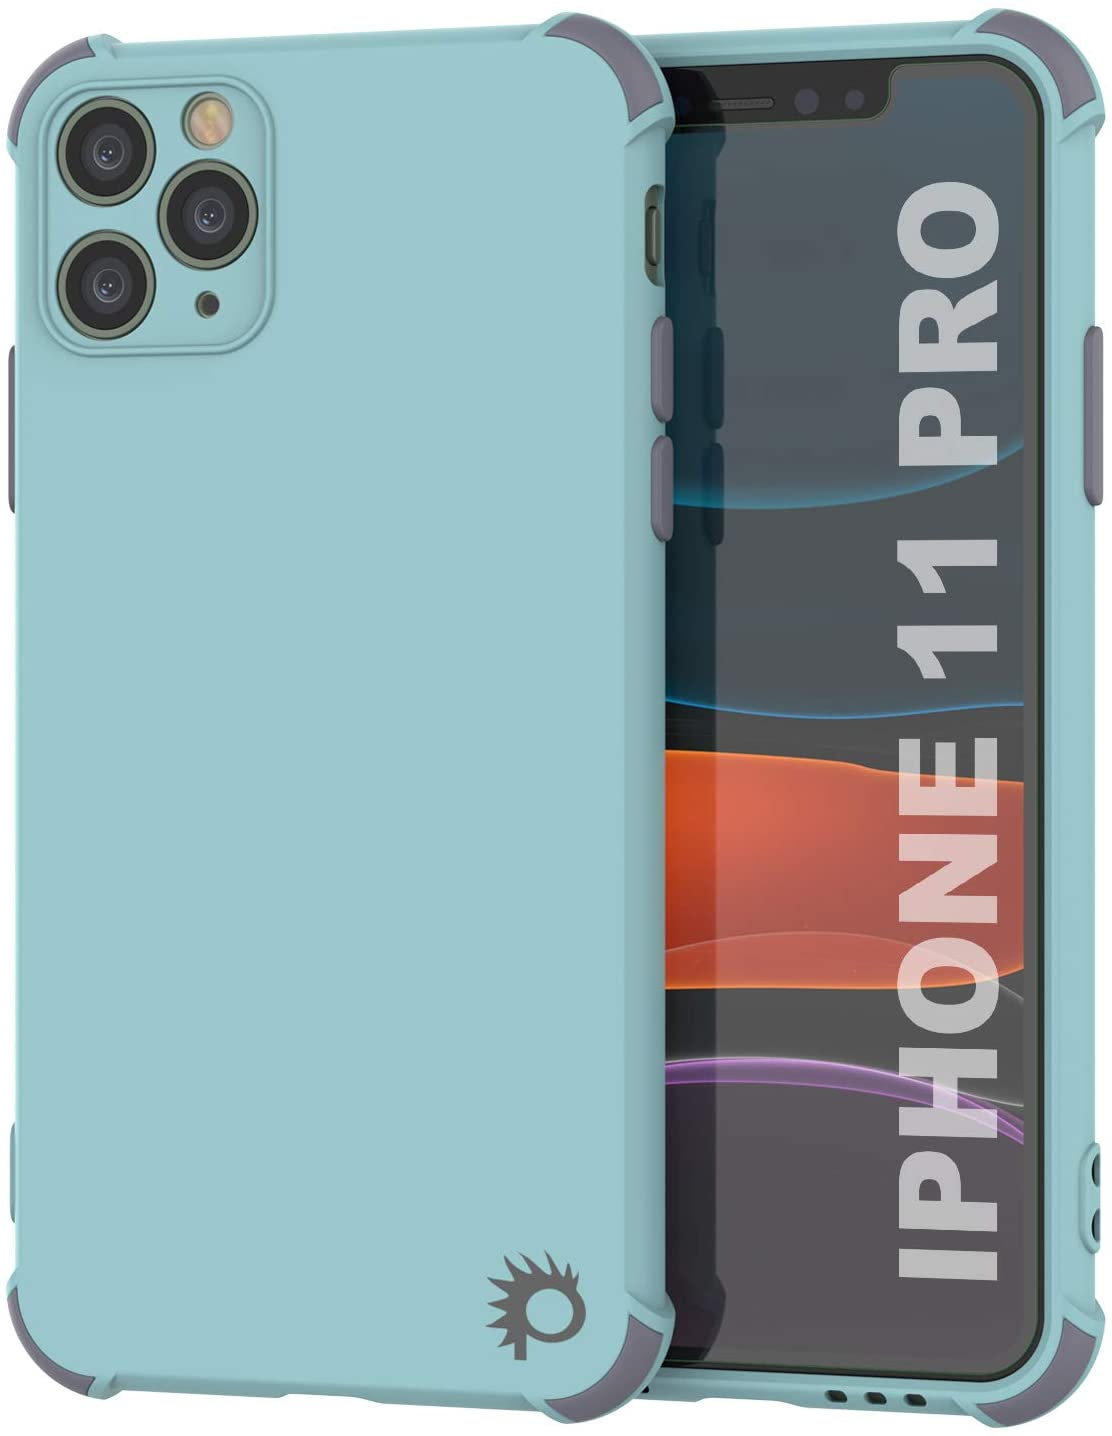 Punkcase Protective & Lightweight TPU Case [Sunshine Series] for iPhone 11 Pro [Teal]